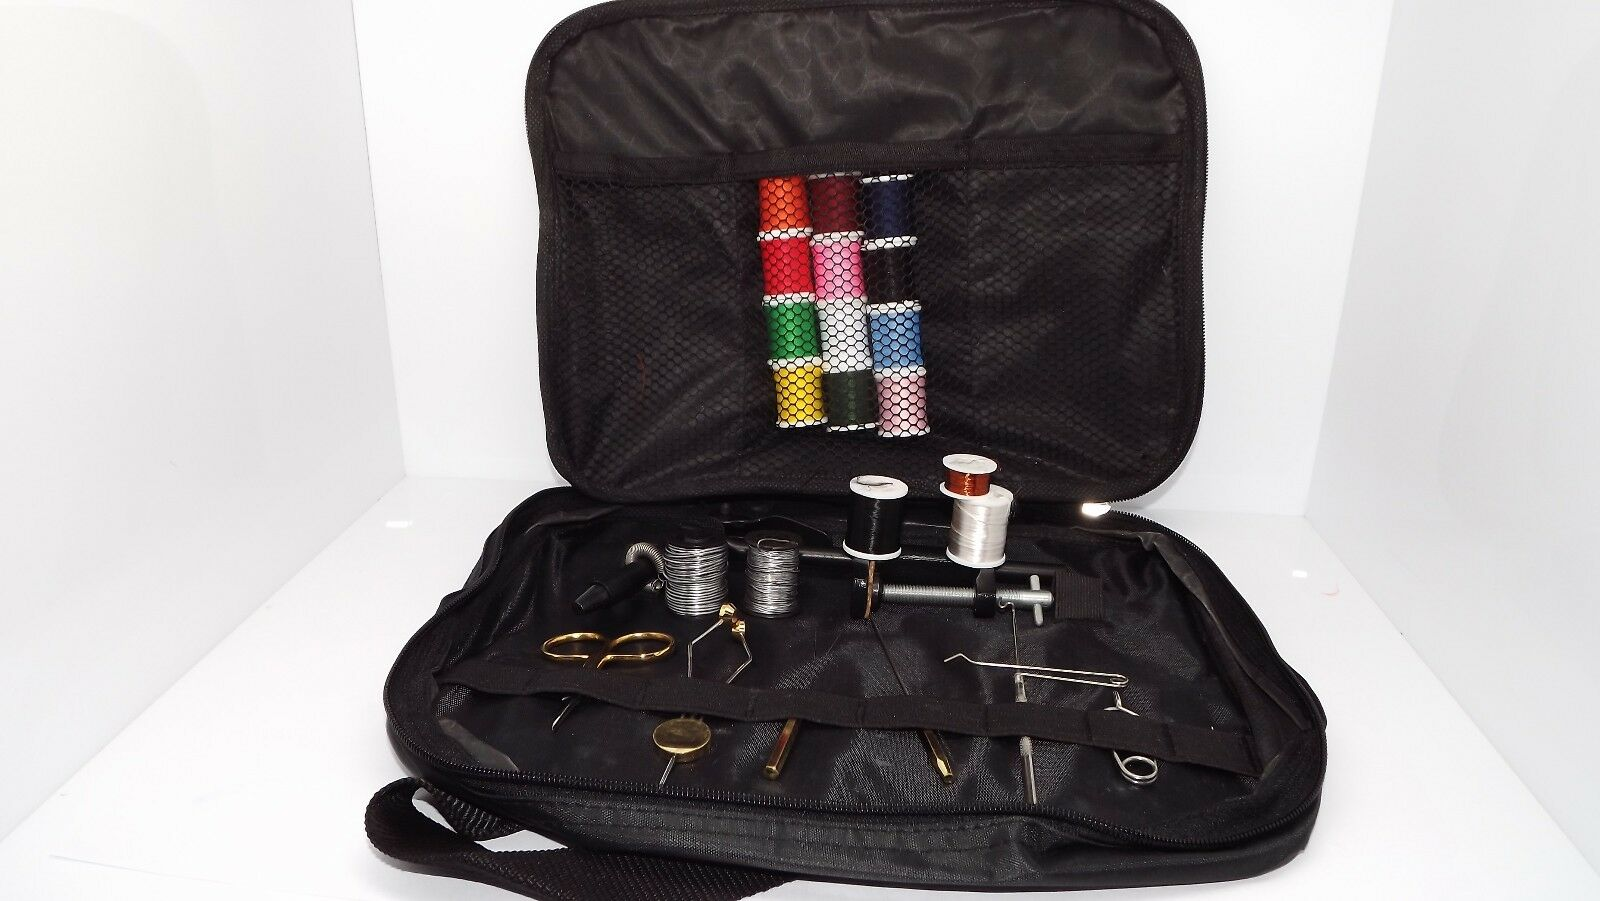 FLY TYING TOOL KITS for beginner ,FLY TYING VICE,TOOLS,MATERIALS